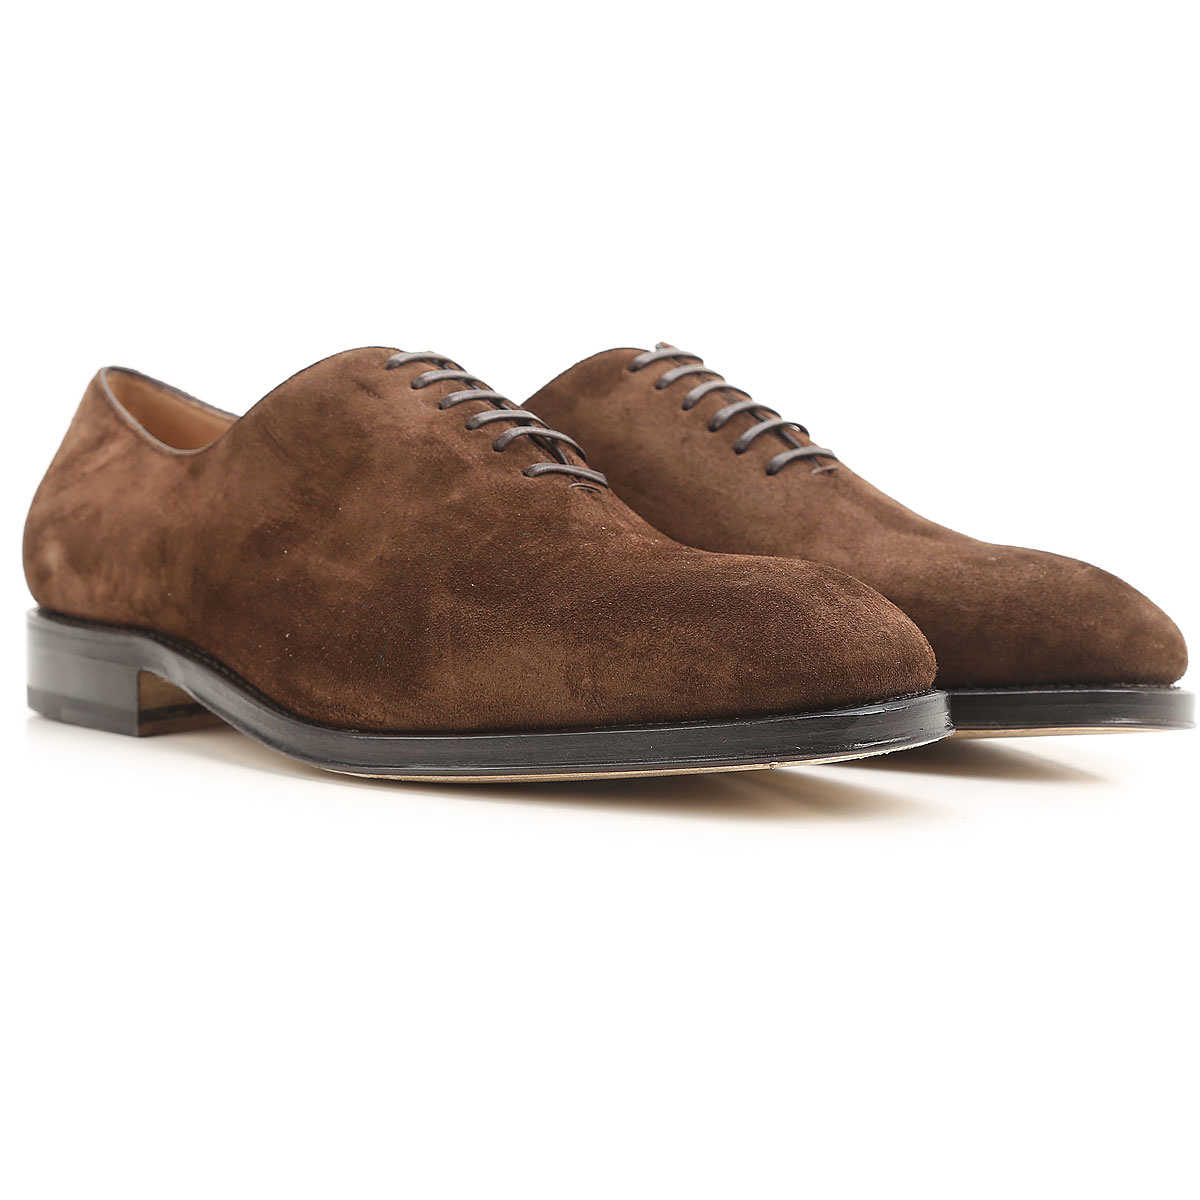 Salvatore Ferragamo Lace Up Shoes for Men Oxfords Derbies and Brogues On Sale in Outlet - GOOFASH